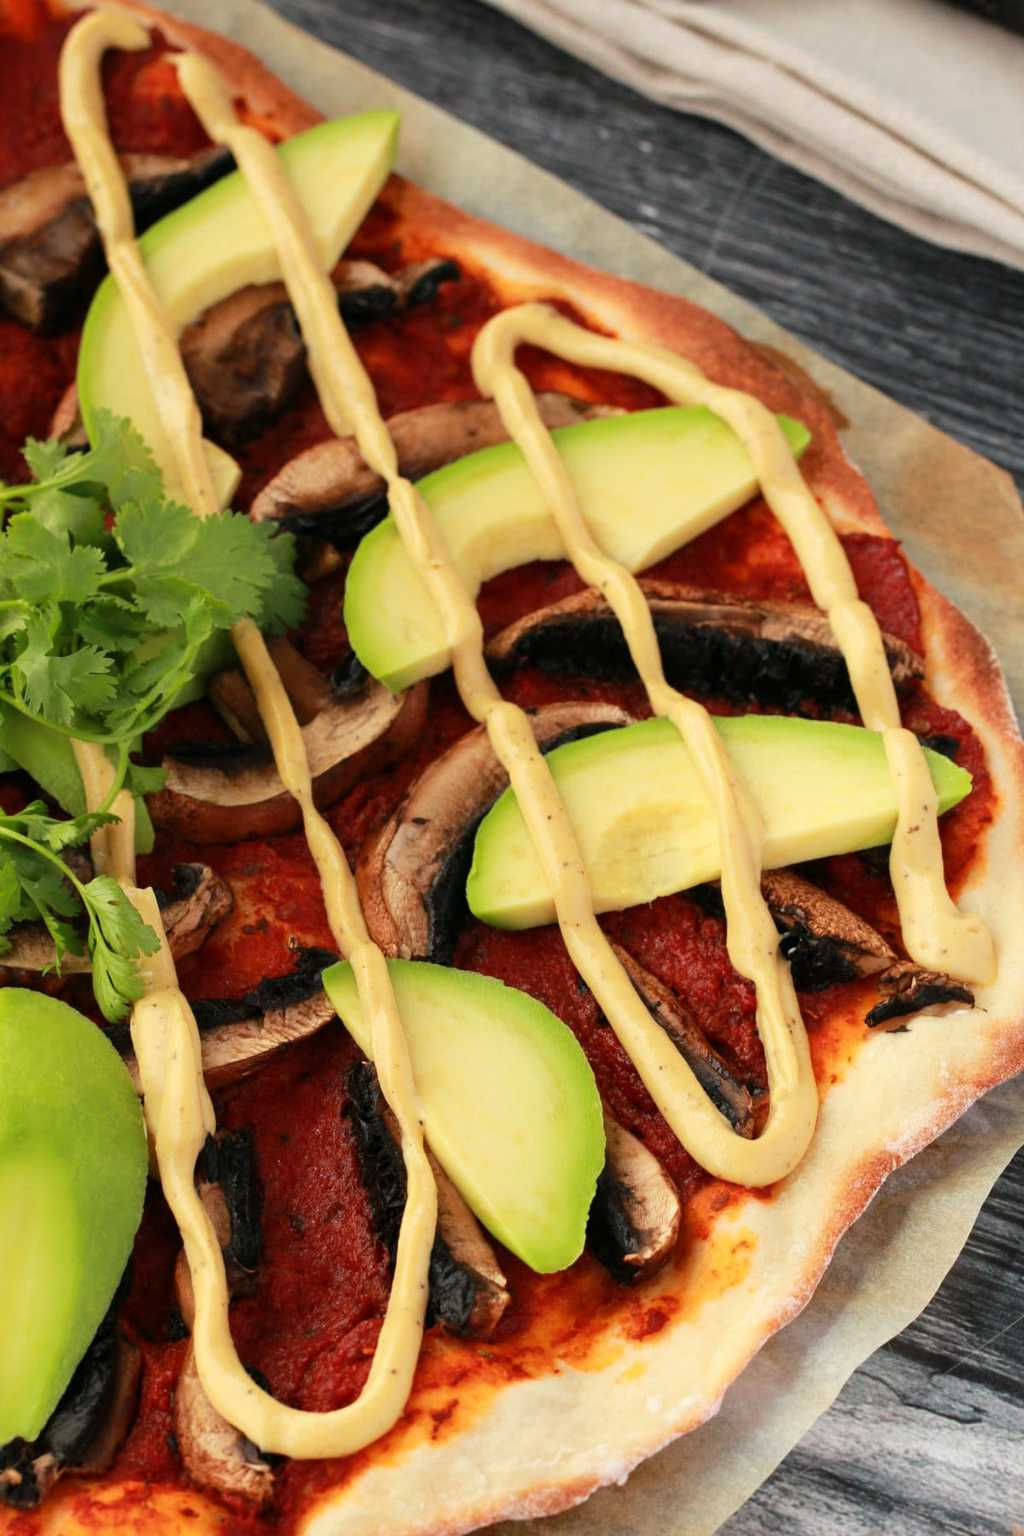 Close up side on shot of homemade pizza with tomato sauce, black mushrooms, sliced avocado and drizzled cashew cheese on parchment paper, a napkin in the background